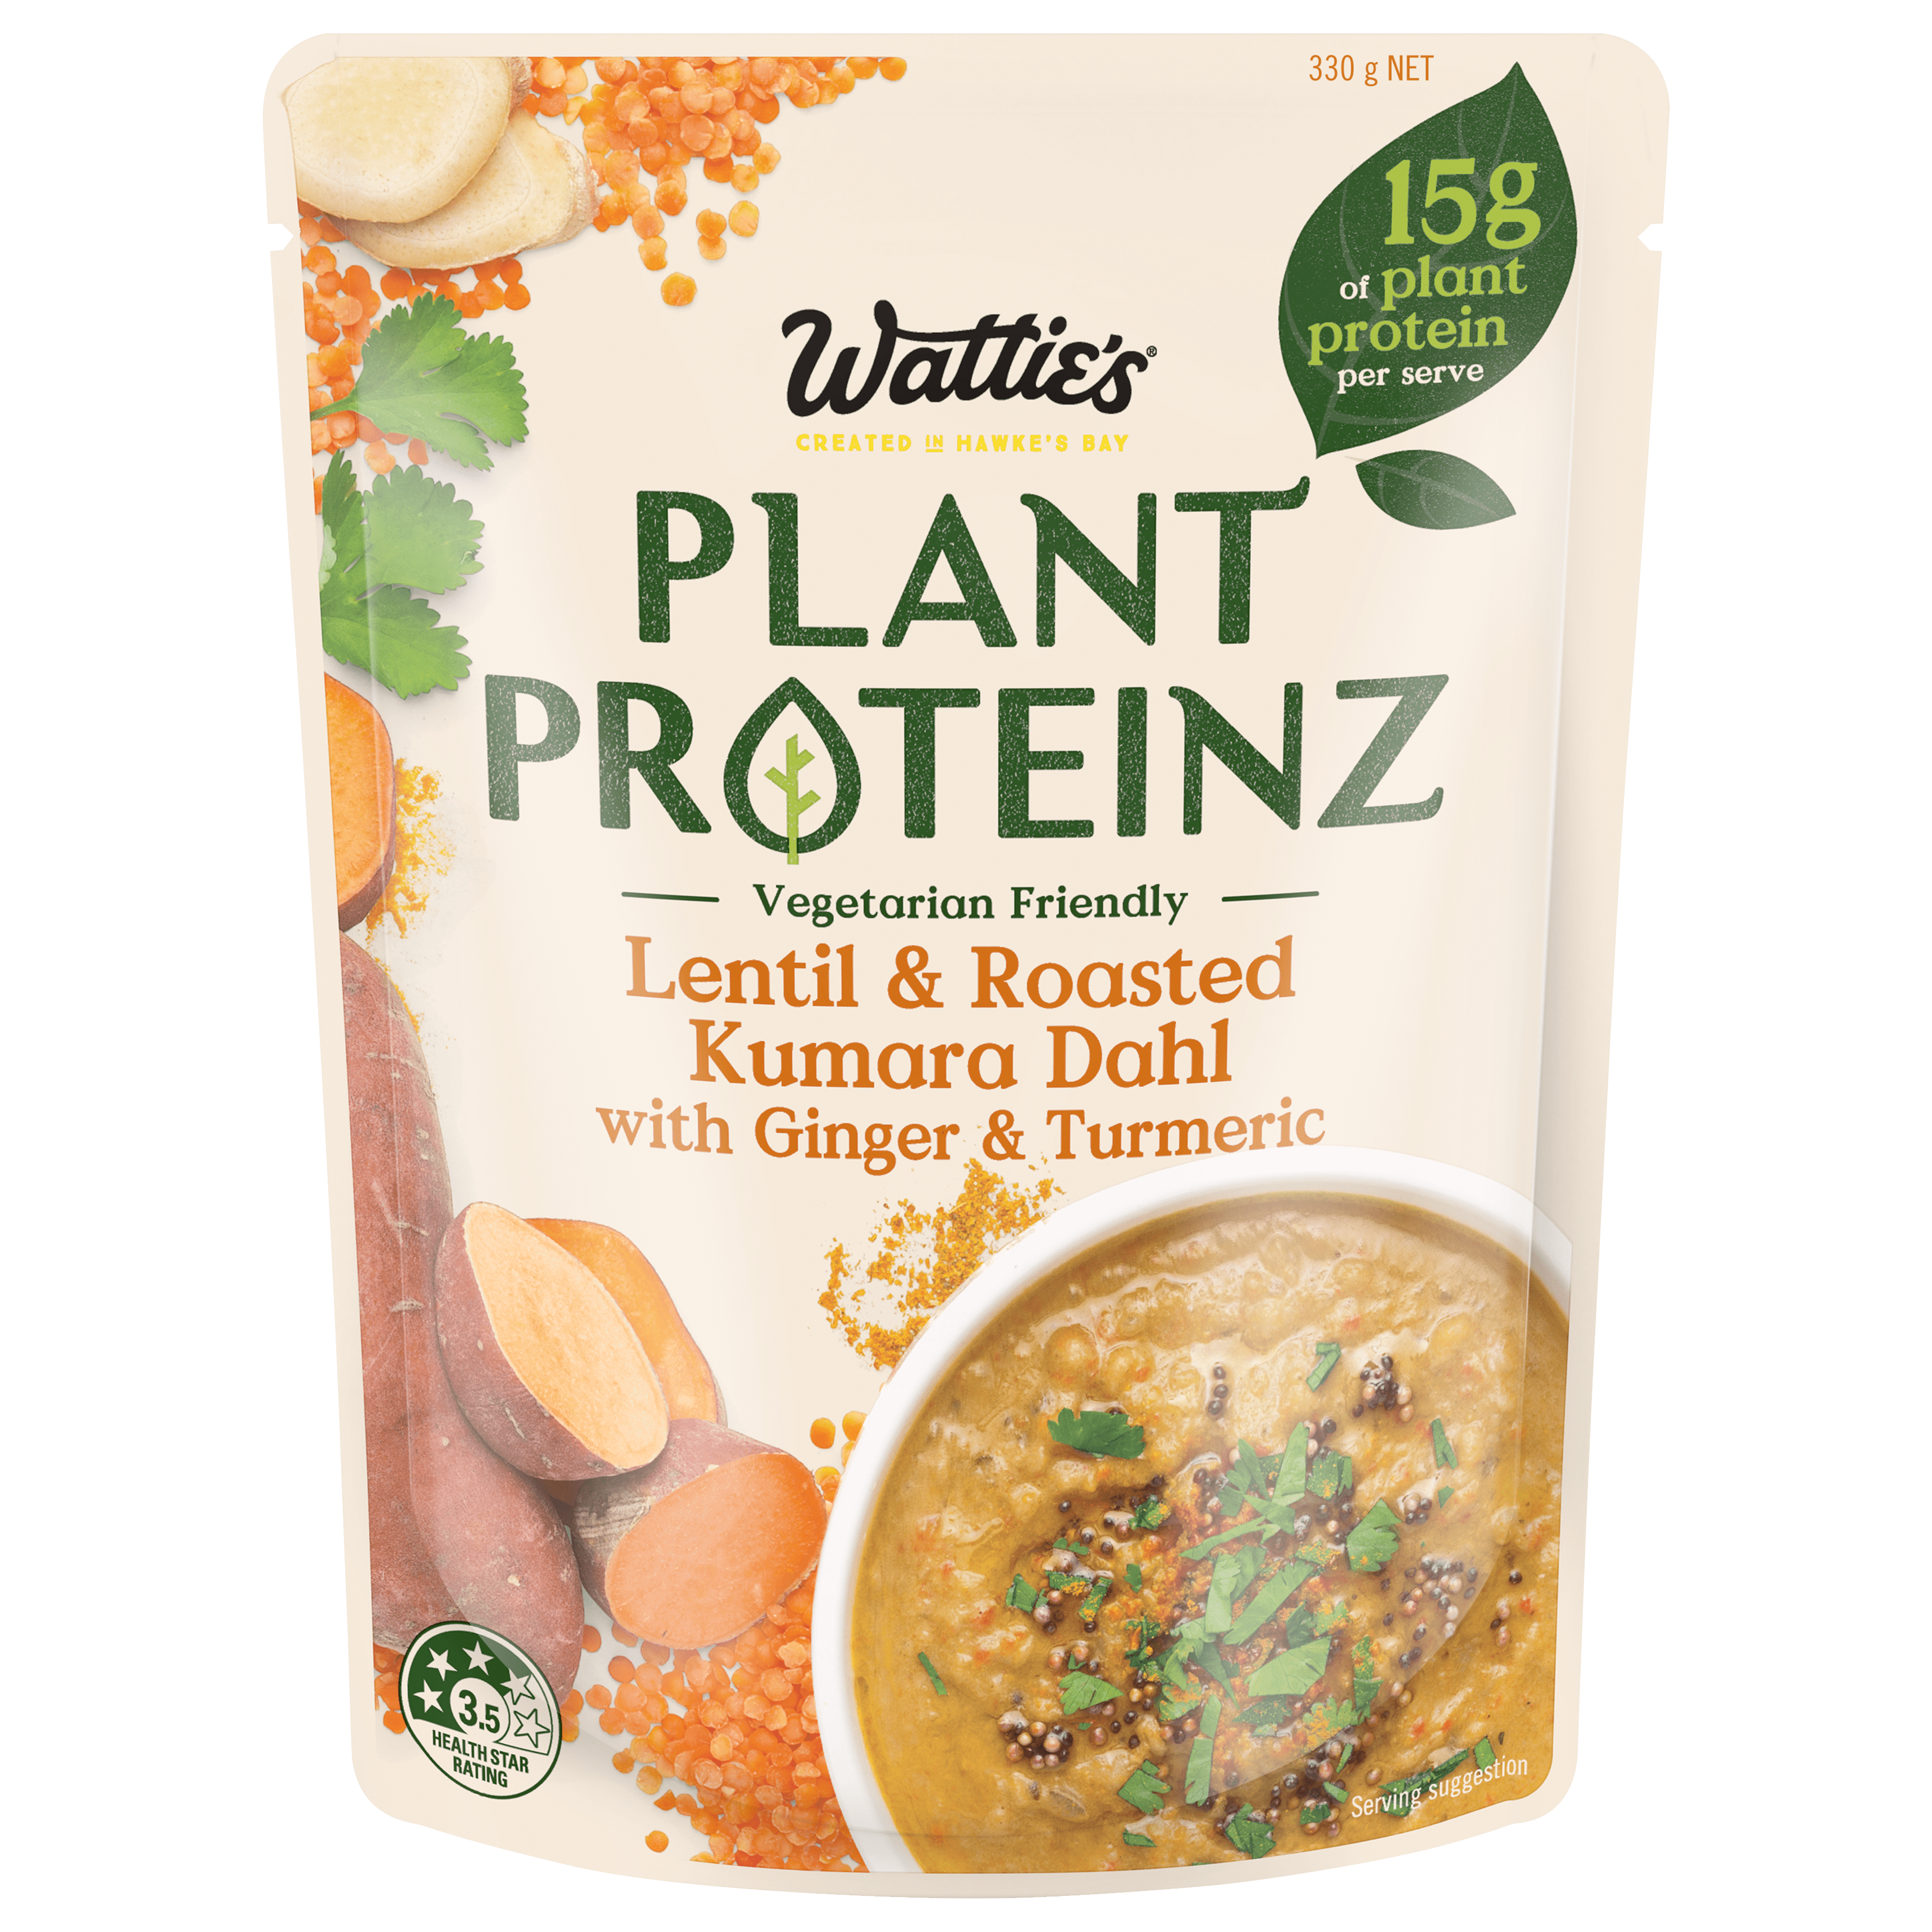 Lentil and Roasted Kumara Dahl with Ginger and Turmeric